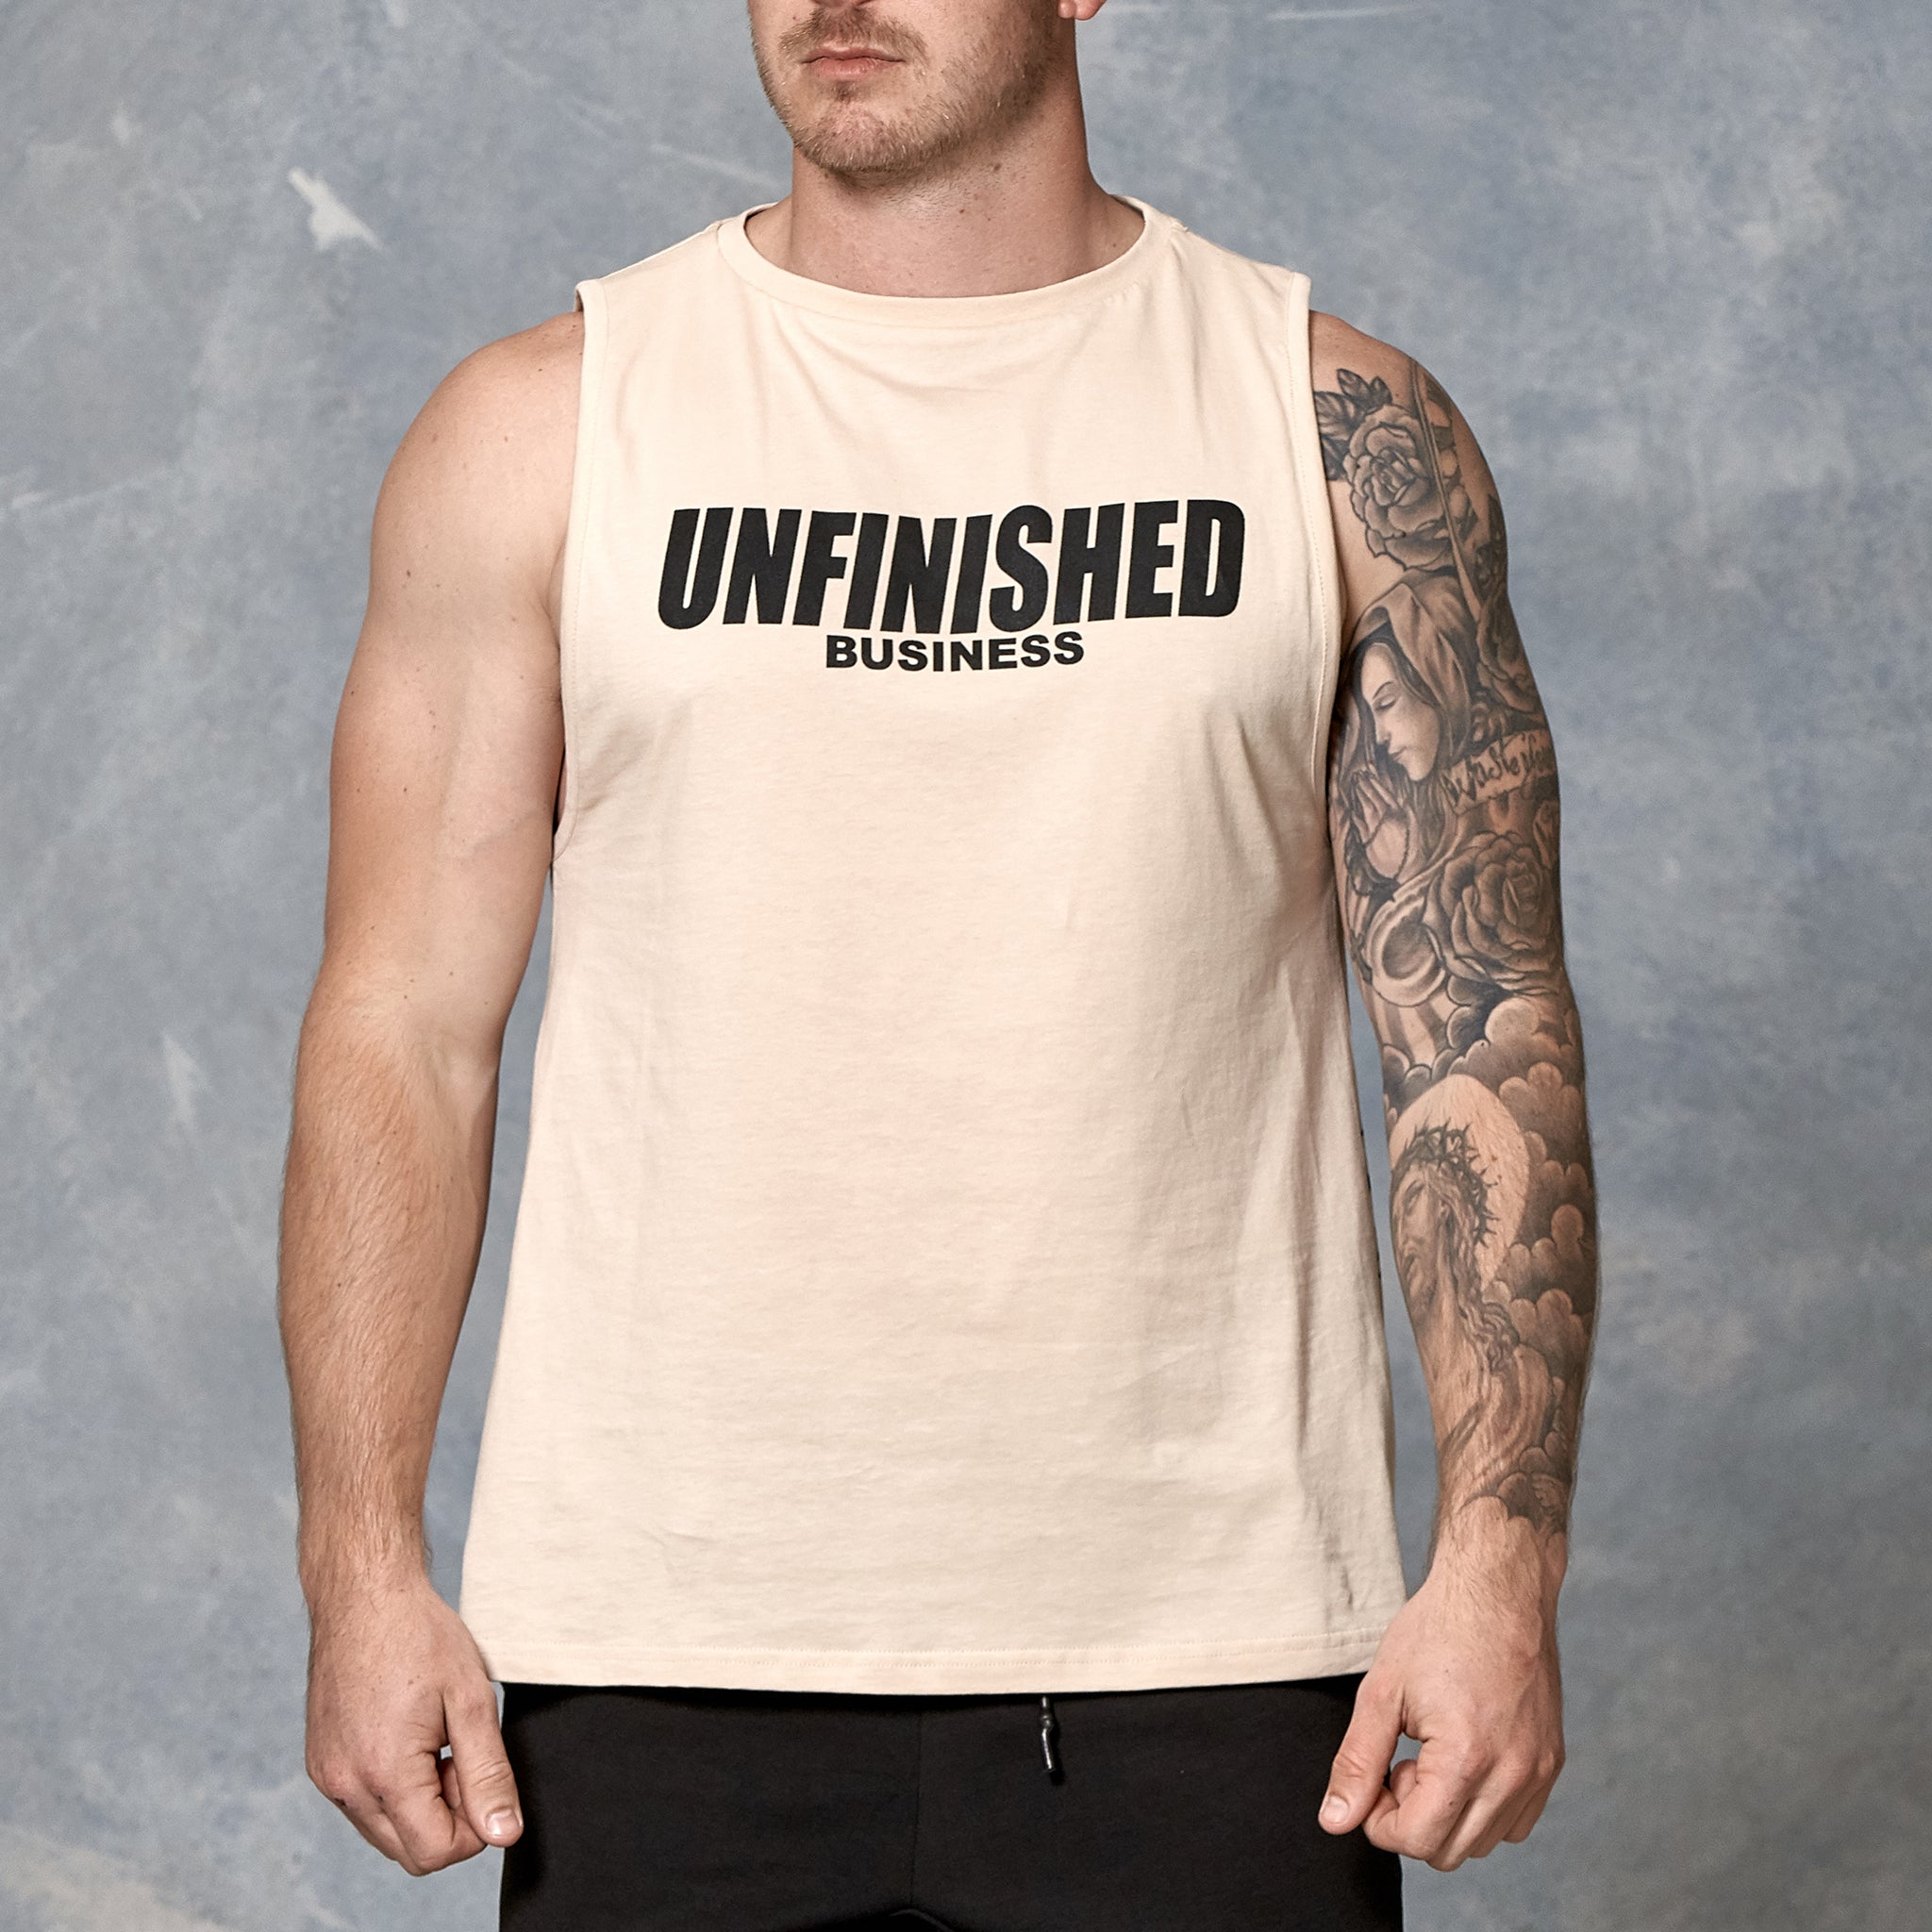 S2 Nude Unfinished Business Muscle Tank